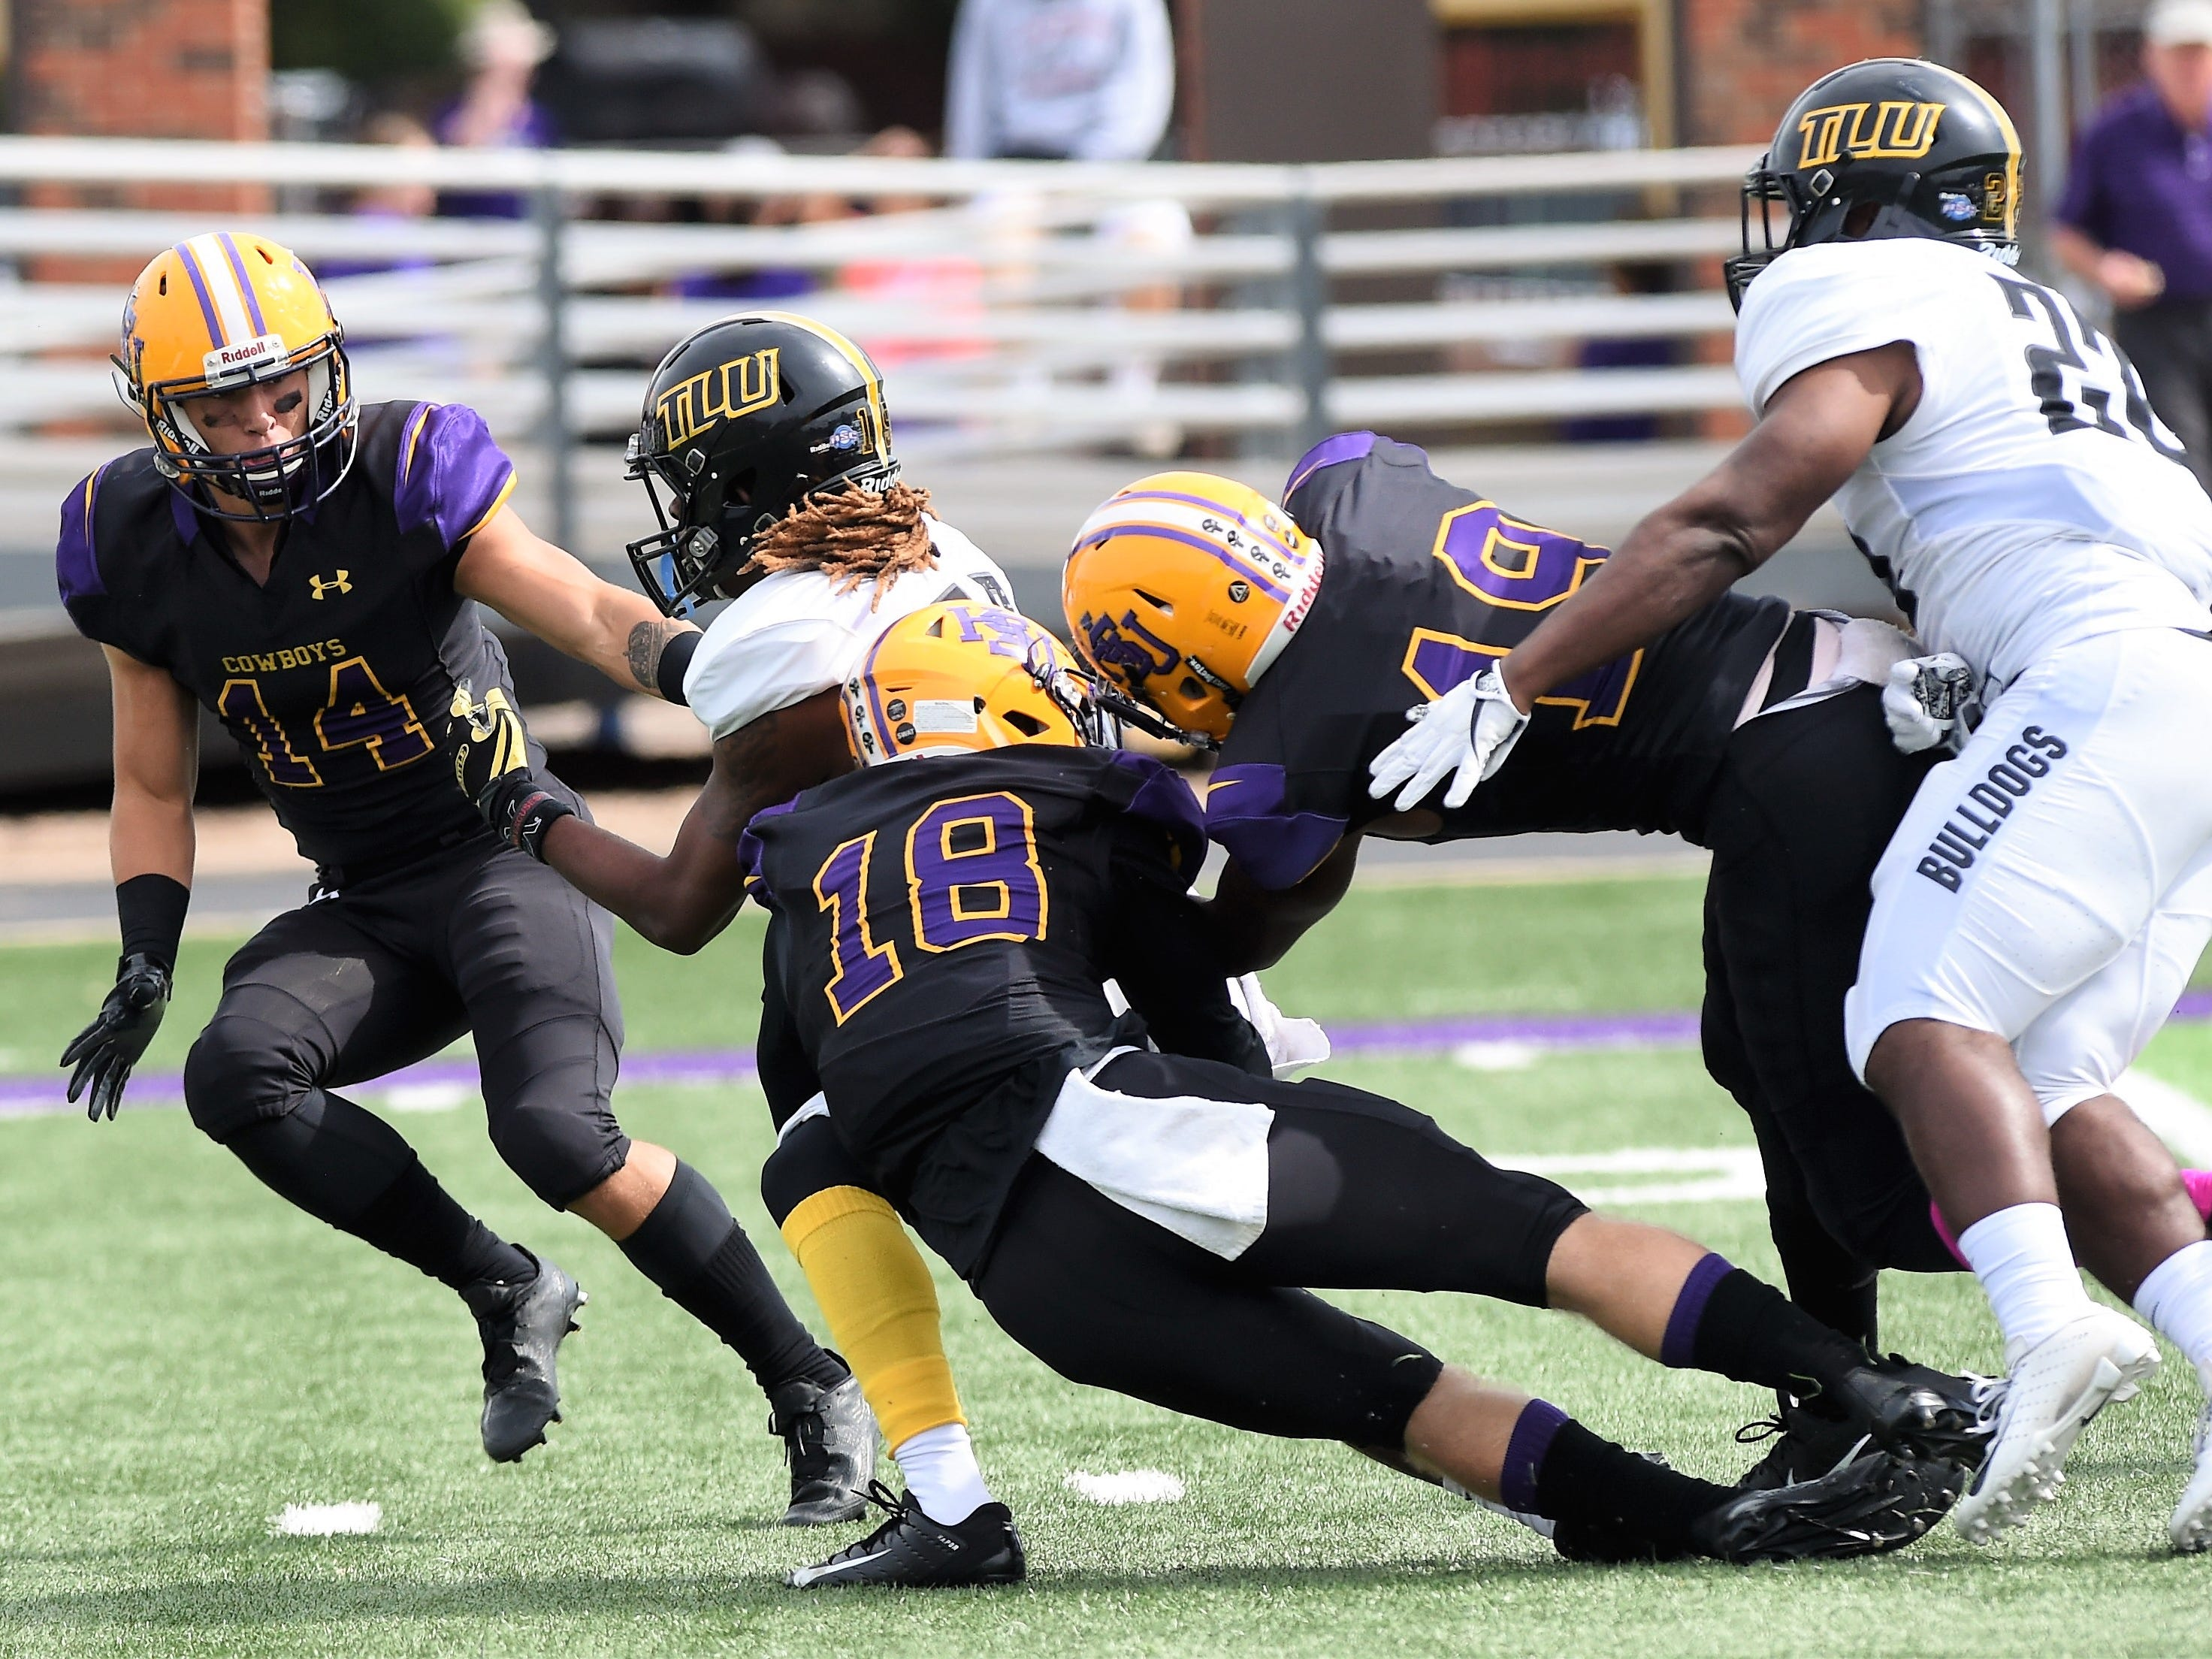 Hardin-Simmons' Travis Wilde (18) and Kelton McGee (19) make a special teams tackle against Texas Lutheran at Shelton Stadium on Saturday, Oct. 20, 2018.